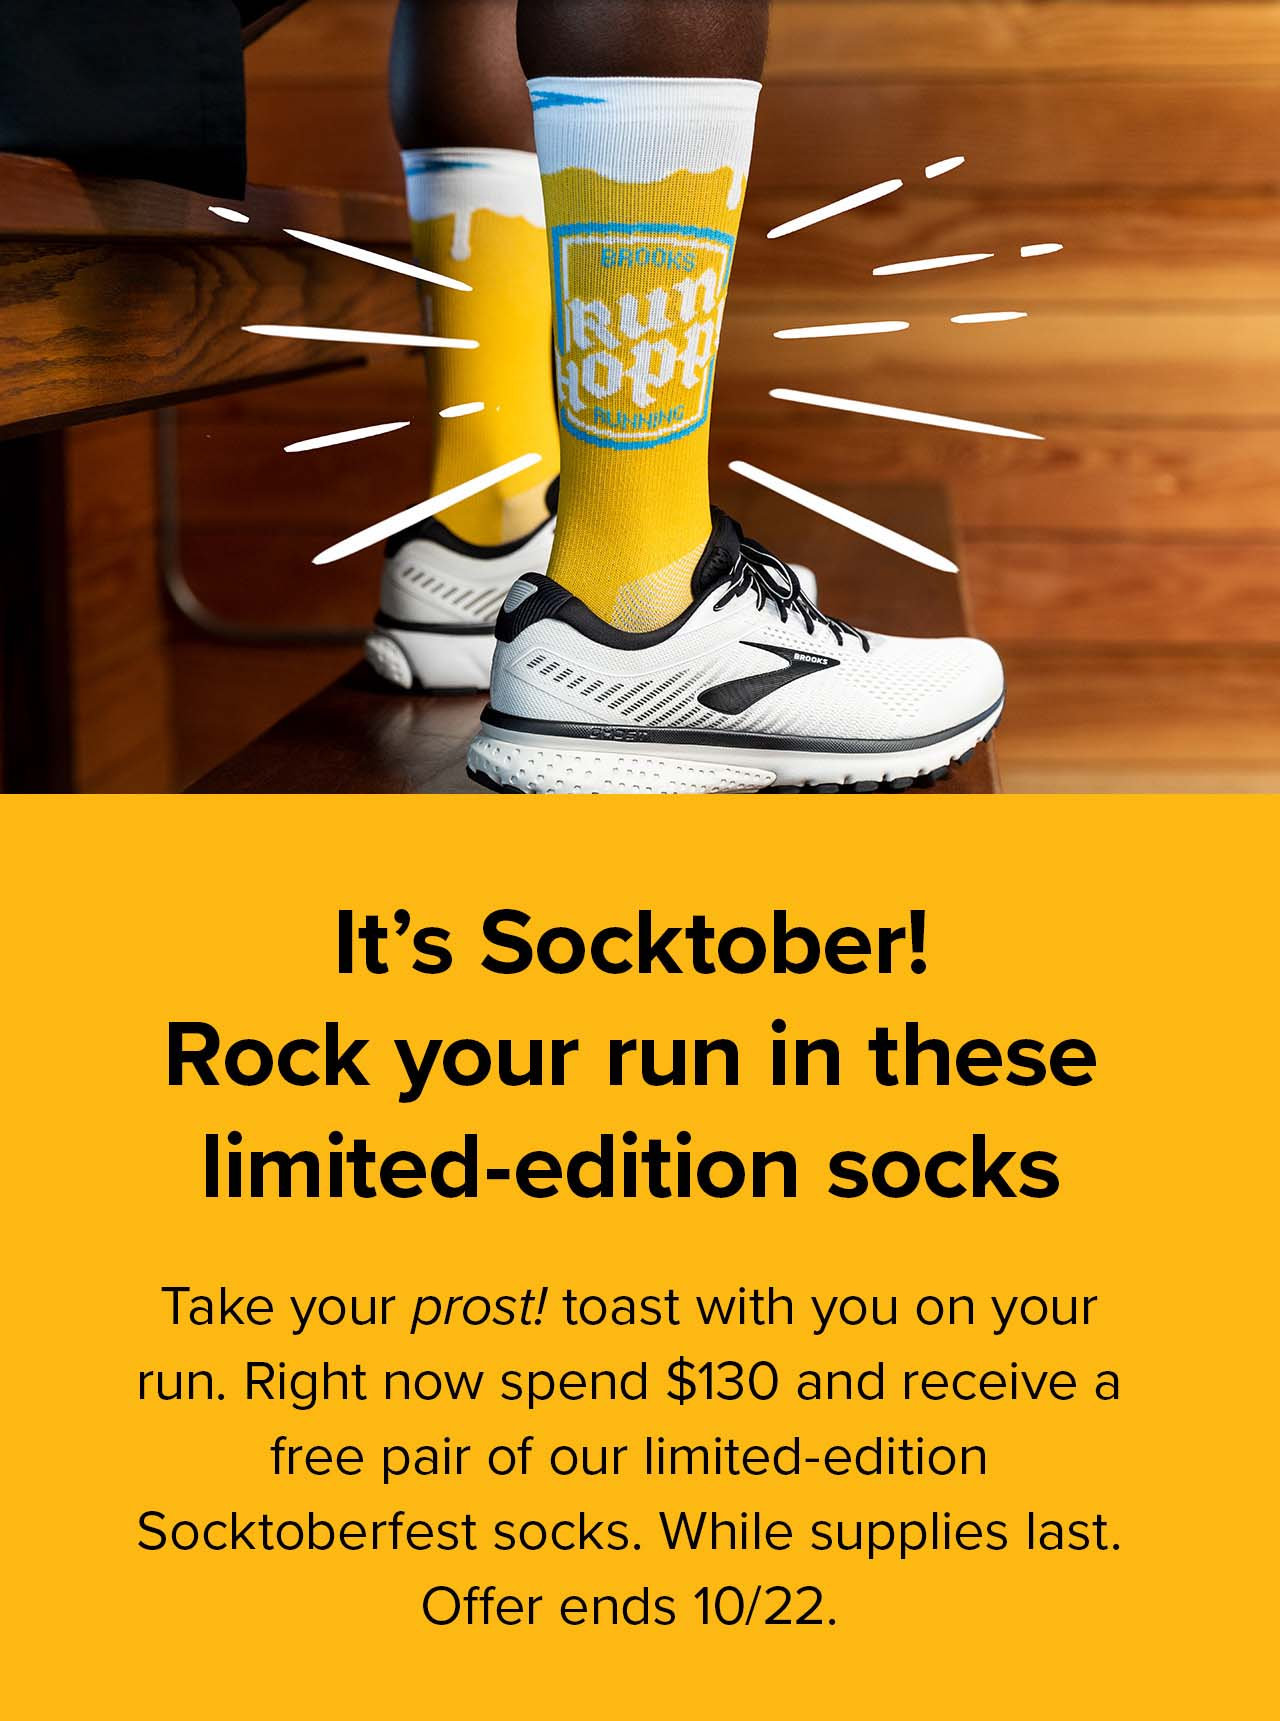 It''s Socktober! Rock your run in these limited-edition socks. Take your prost! toast with you on your run. Right now spend $130 and receive a free pair of our limited-edition Socktoberfest socks. While supplies last. Offer ends 10/22.